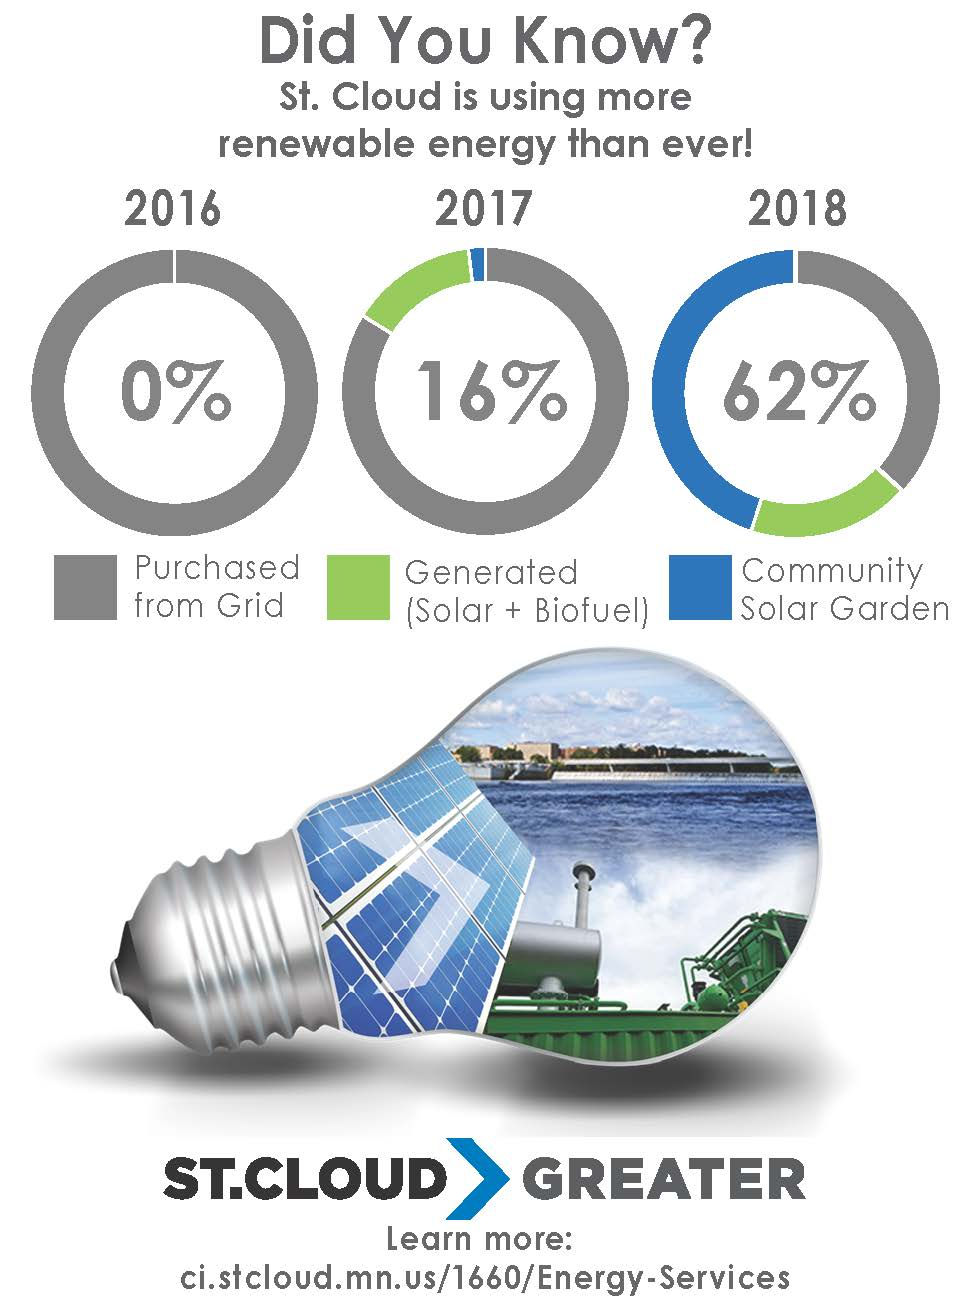 Graphic showing renewable energy use from 2016-2018 (0% to 62%) and sources